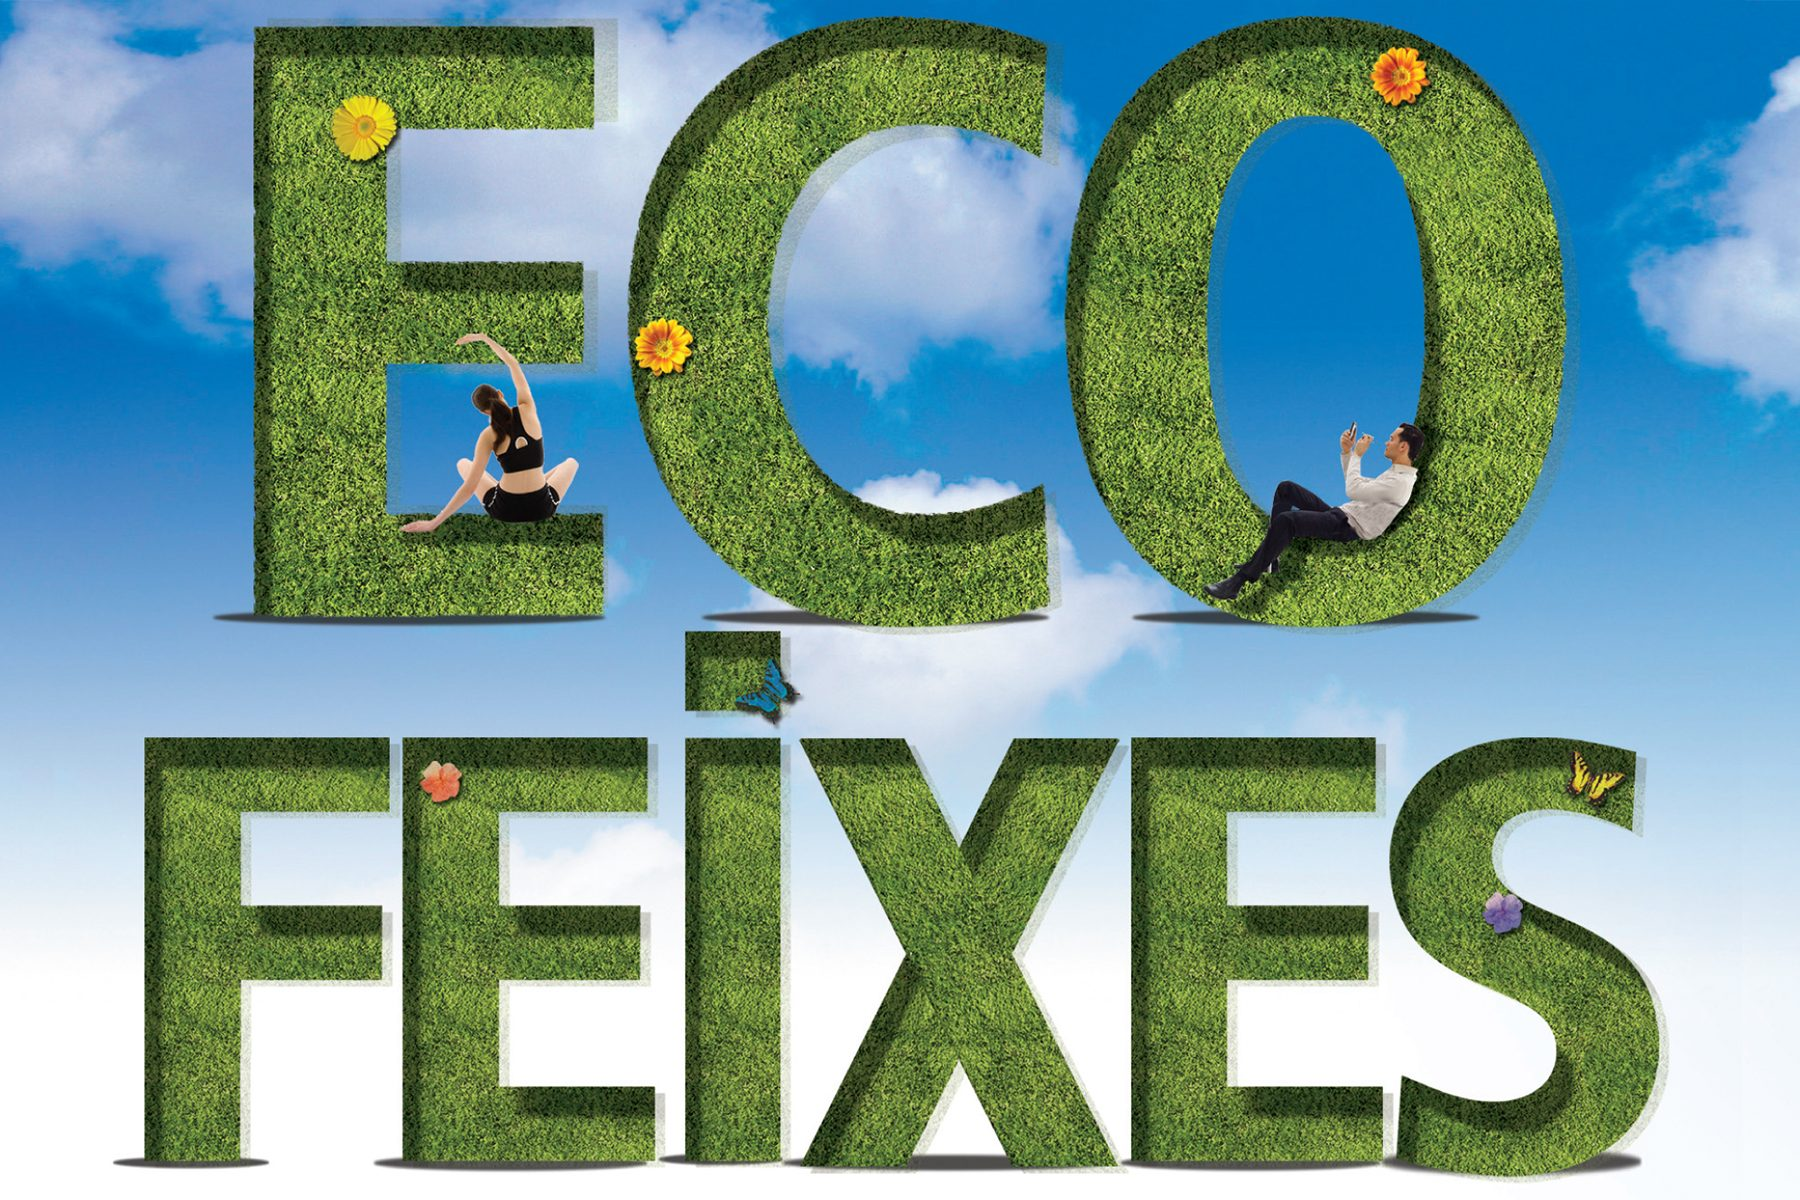 Ecofeixes, the first organic cooperative of Ibiza